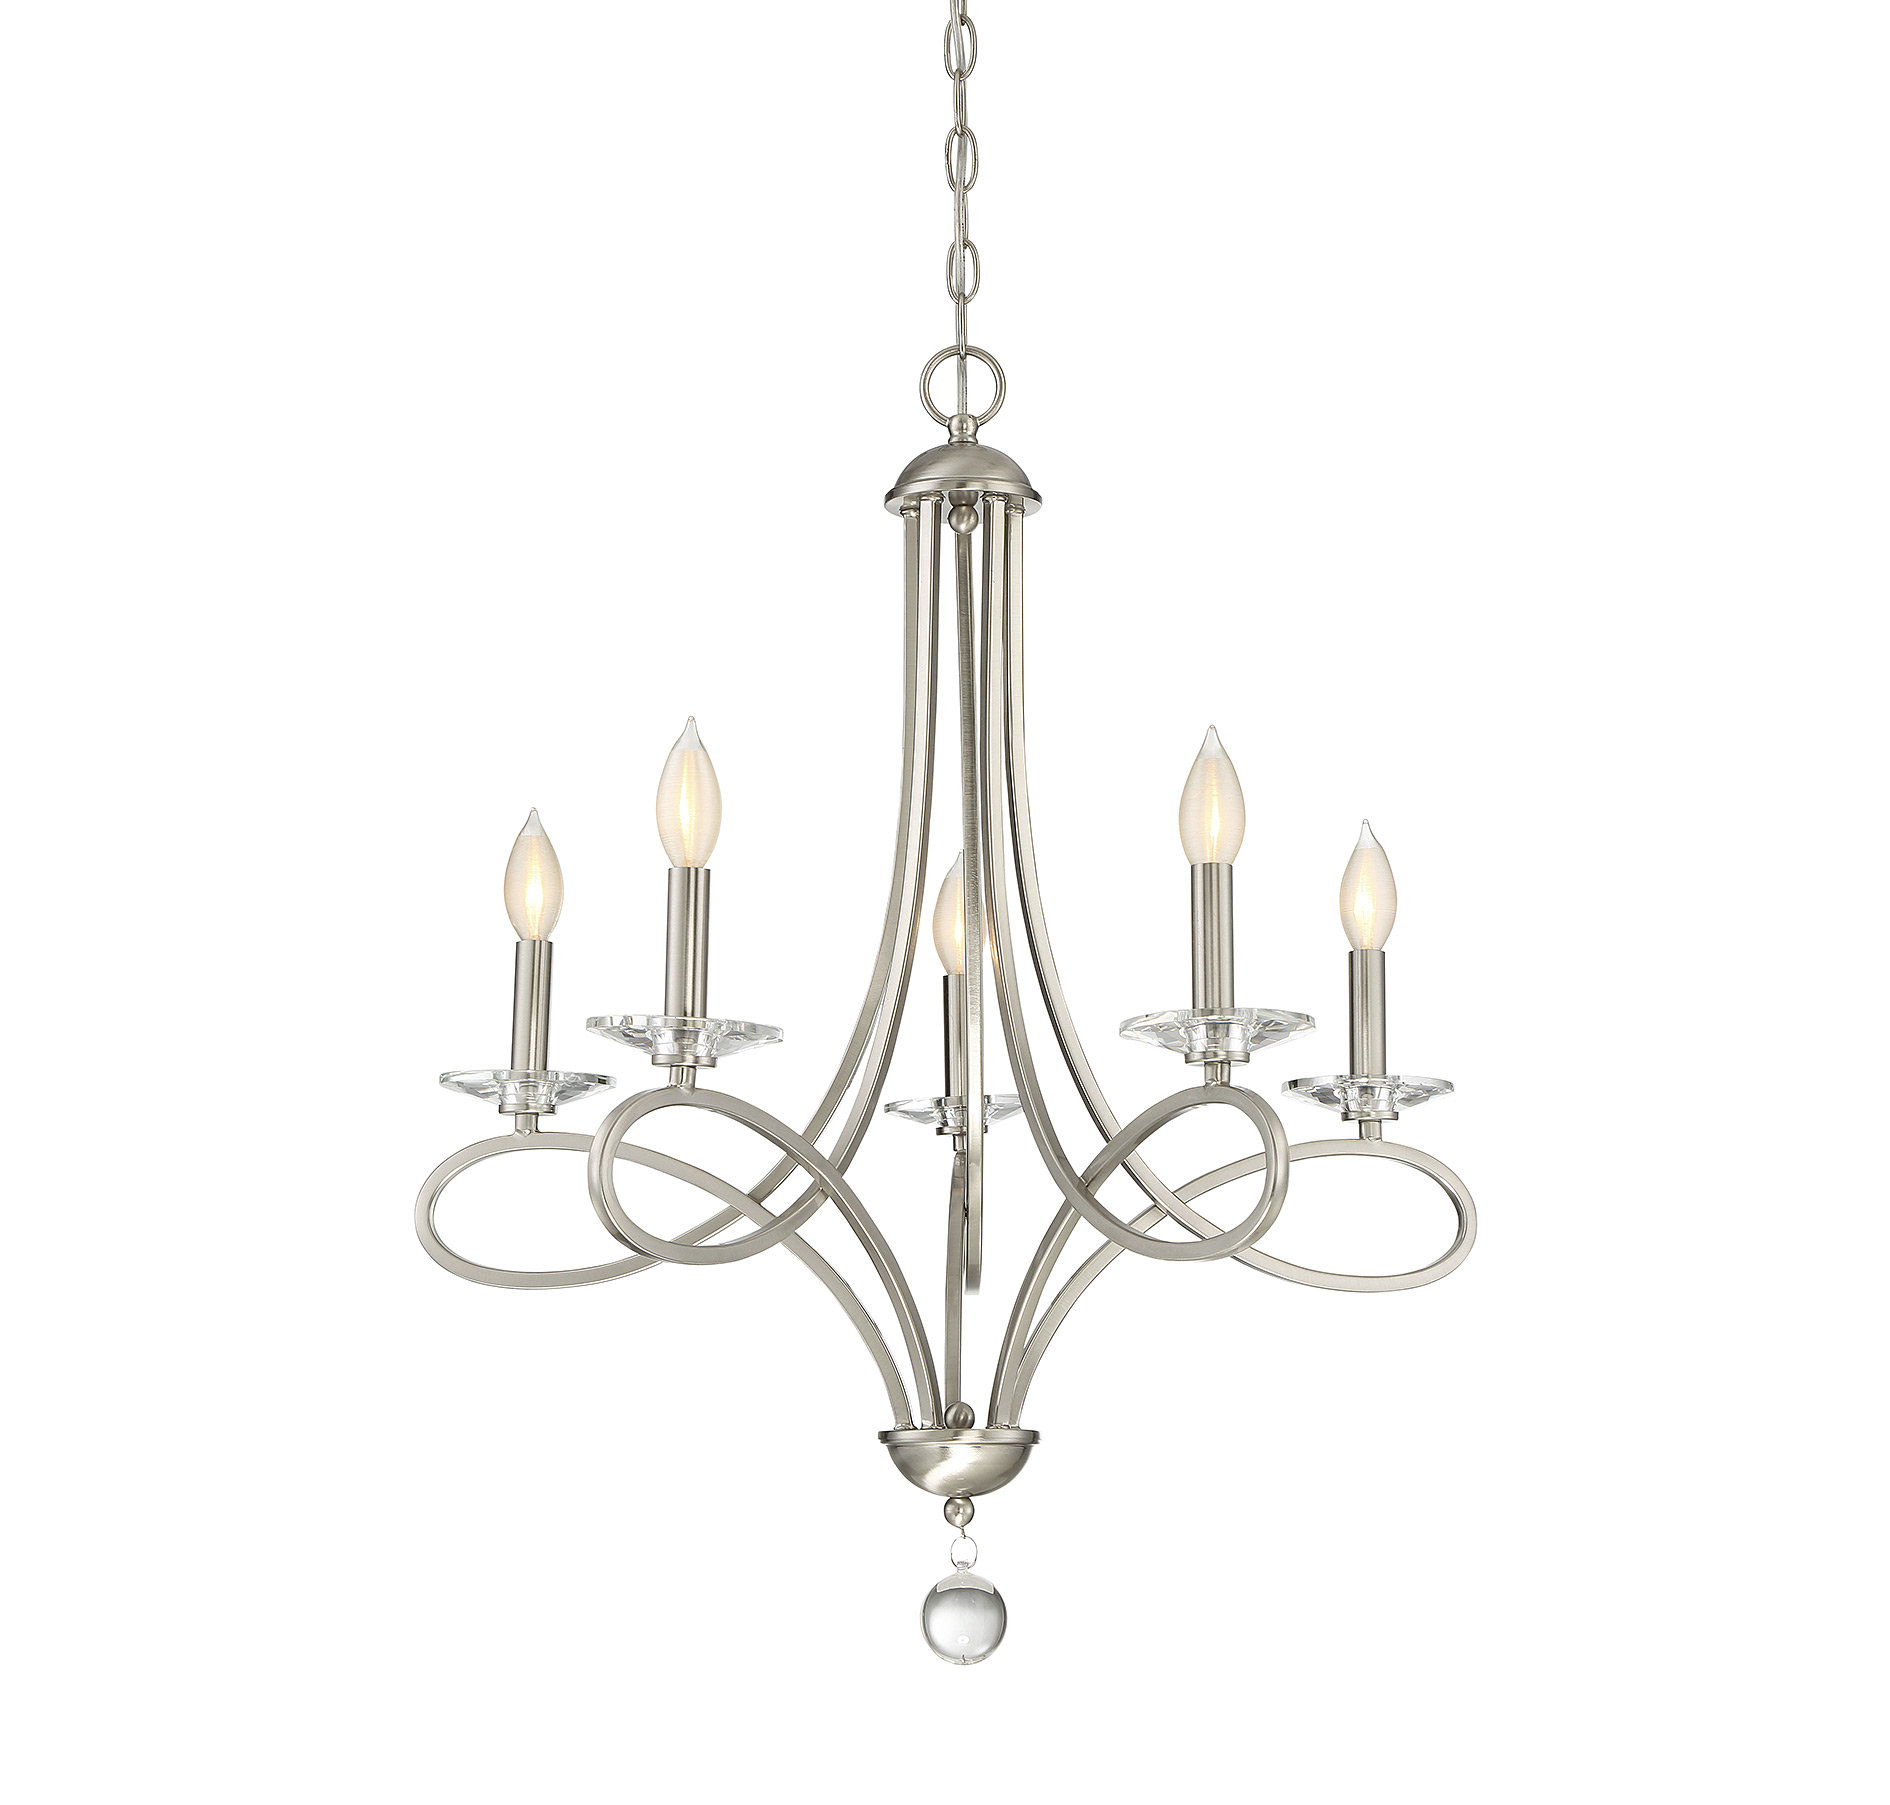 Willa Arlo Interiors Berger 5-Light Candle Style Chandelier regarding Corneau 5-Light Chandeliers (Image 30 of 30)